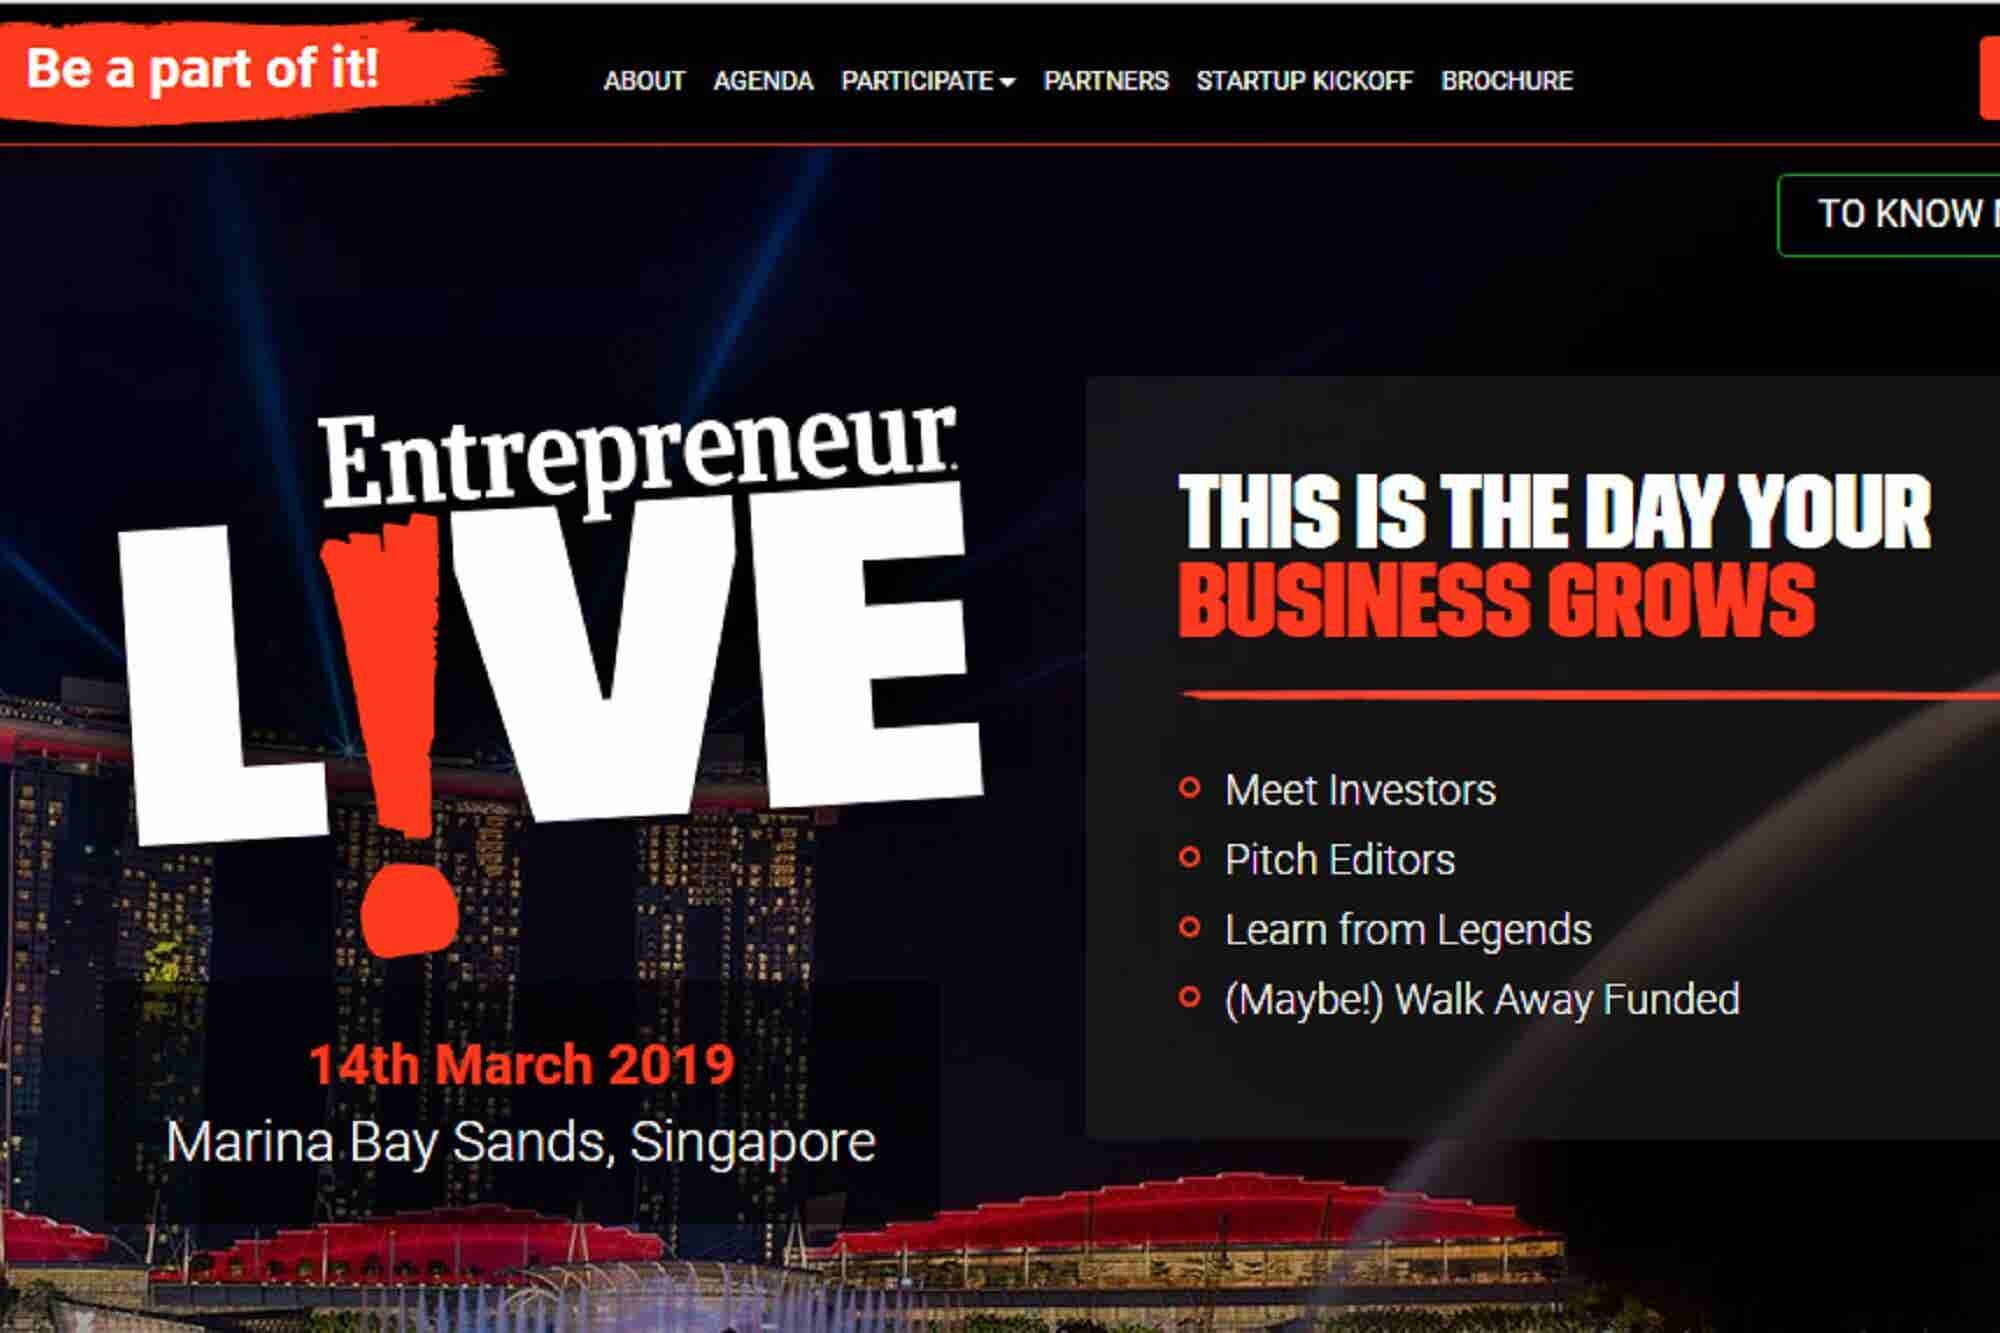 Turn Your Big Idea into a Reality at Entrepreneur LIVE in Singapore